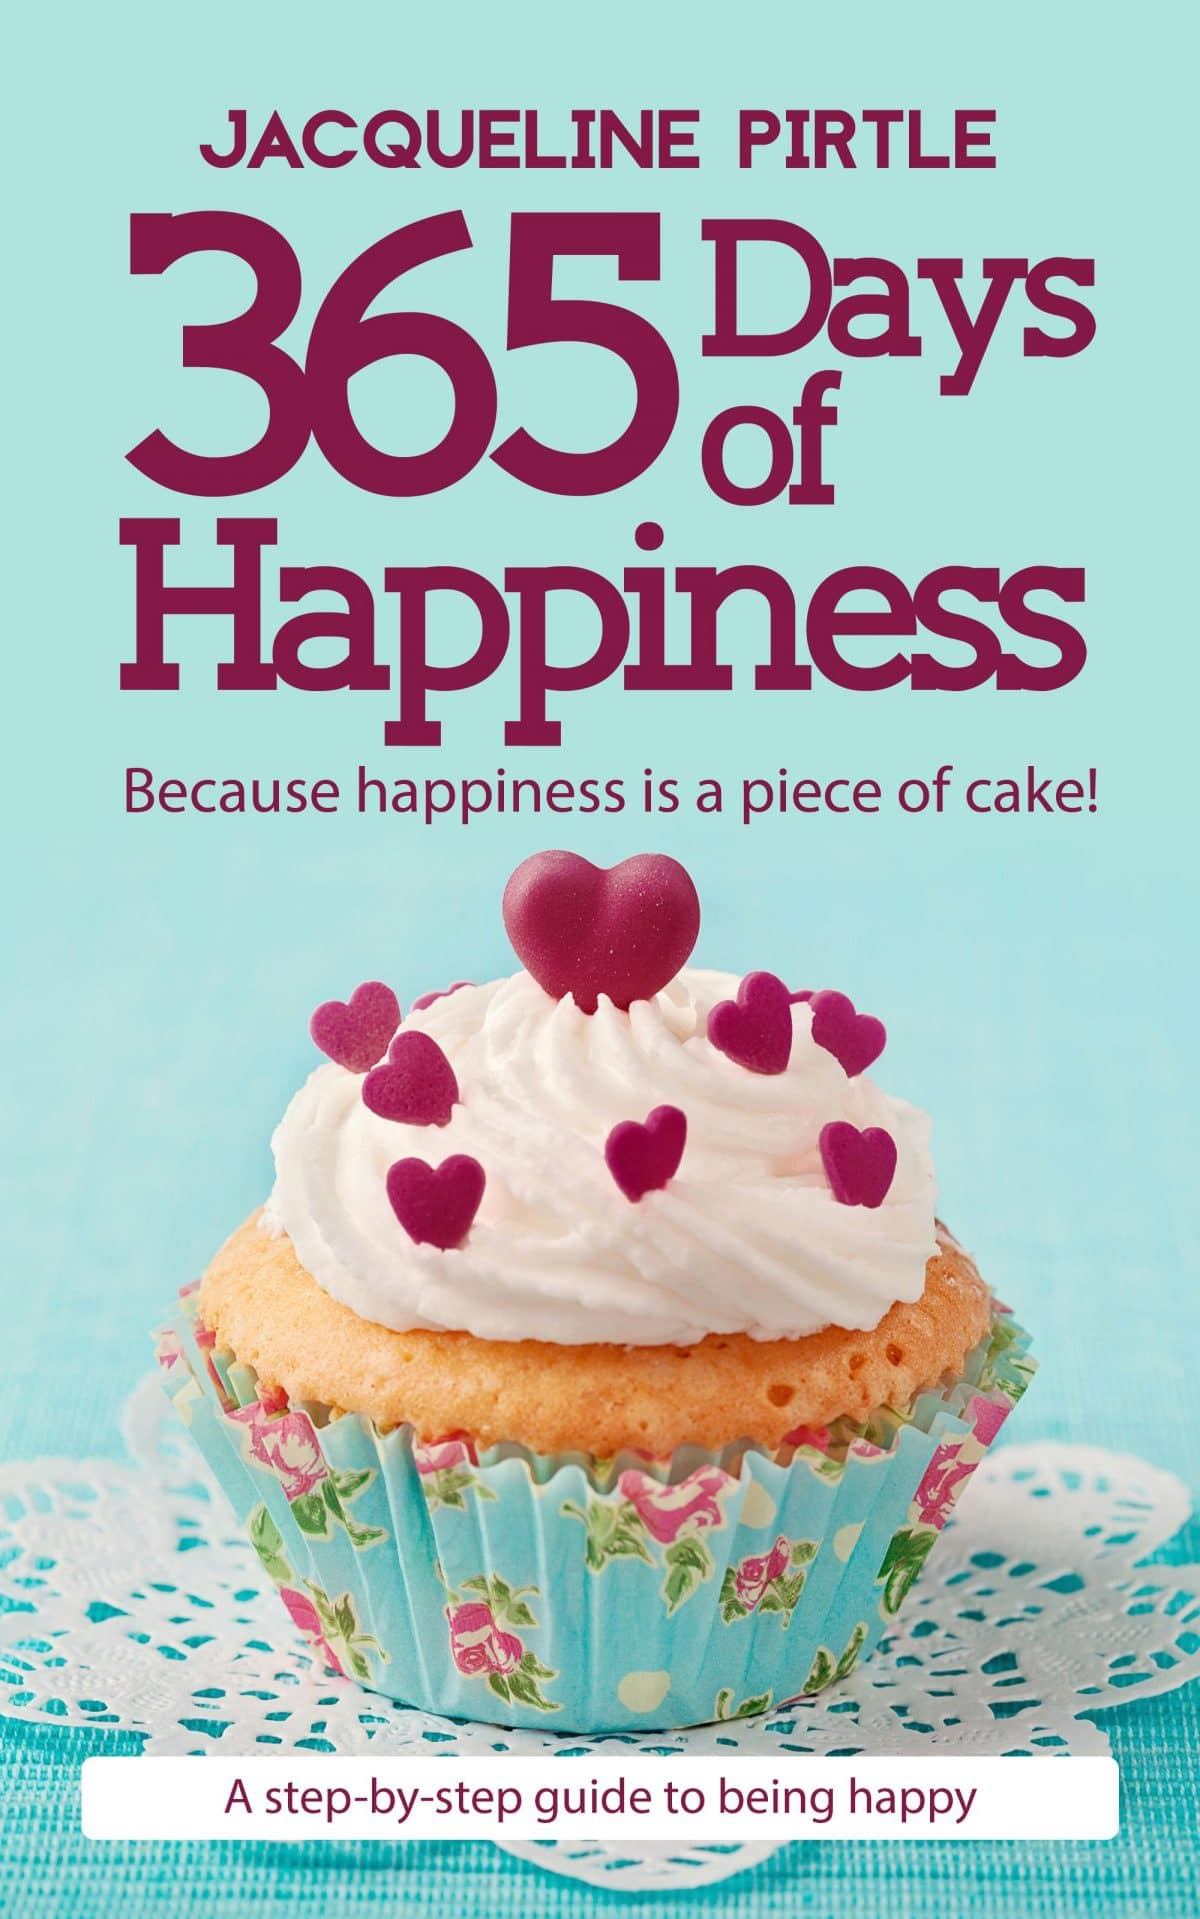 Jacqueline Pirtle 365 days of happiness book